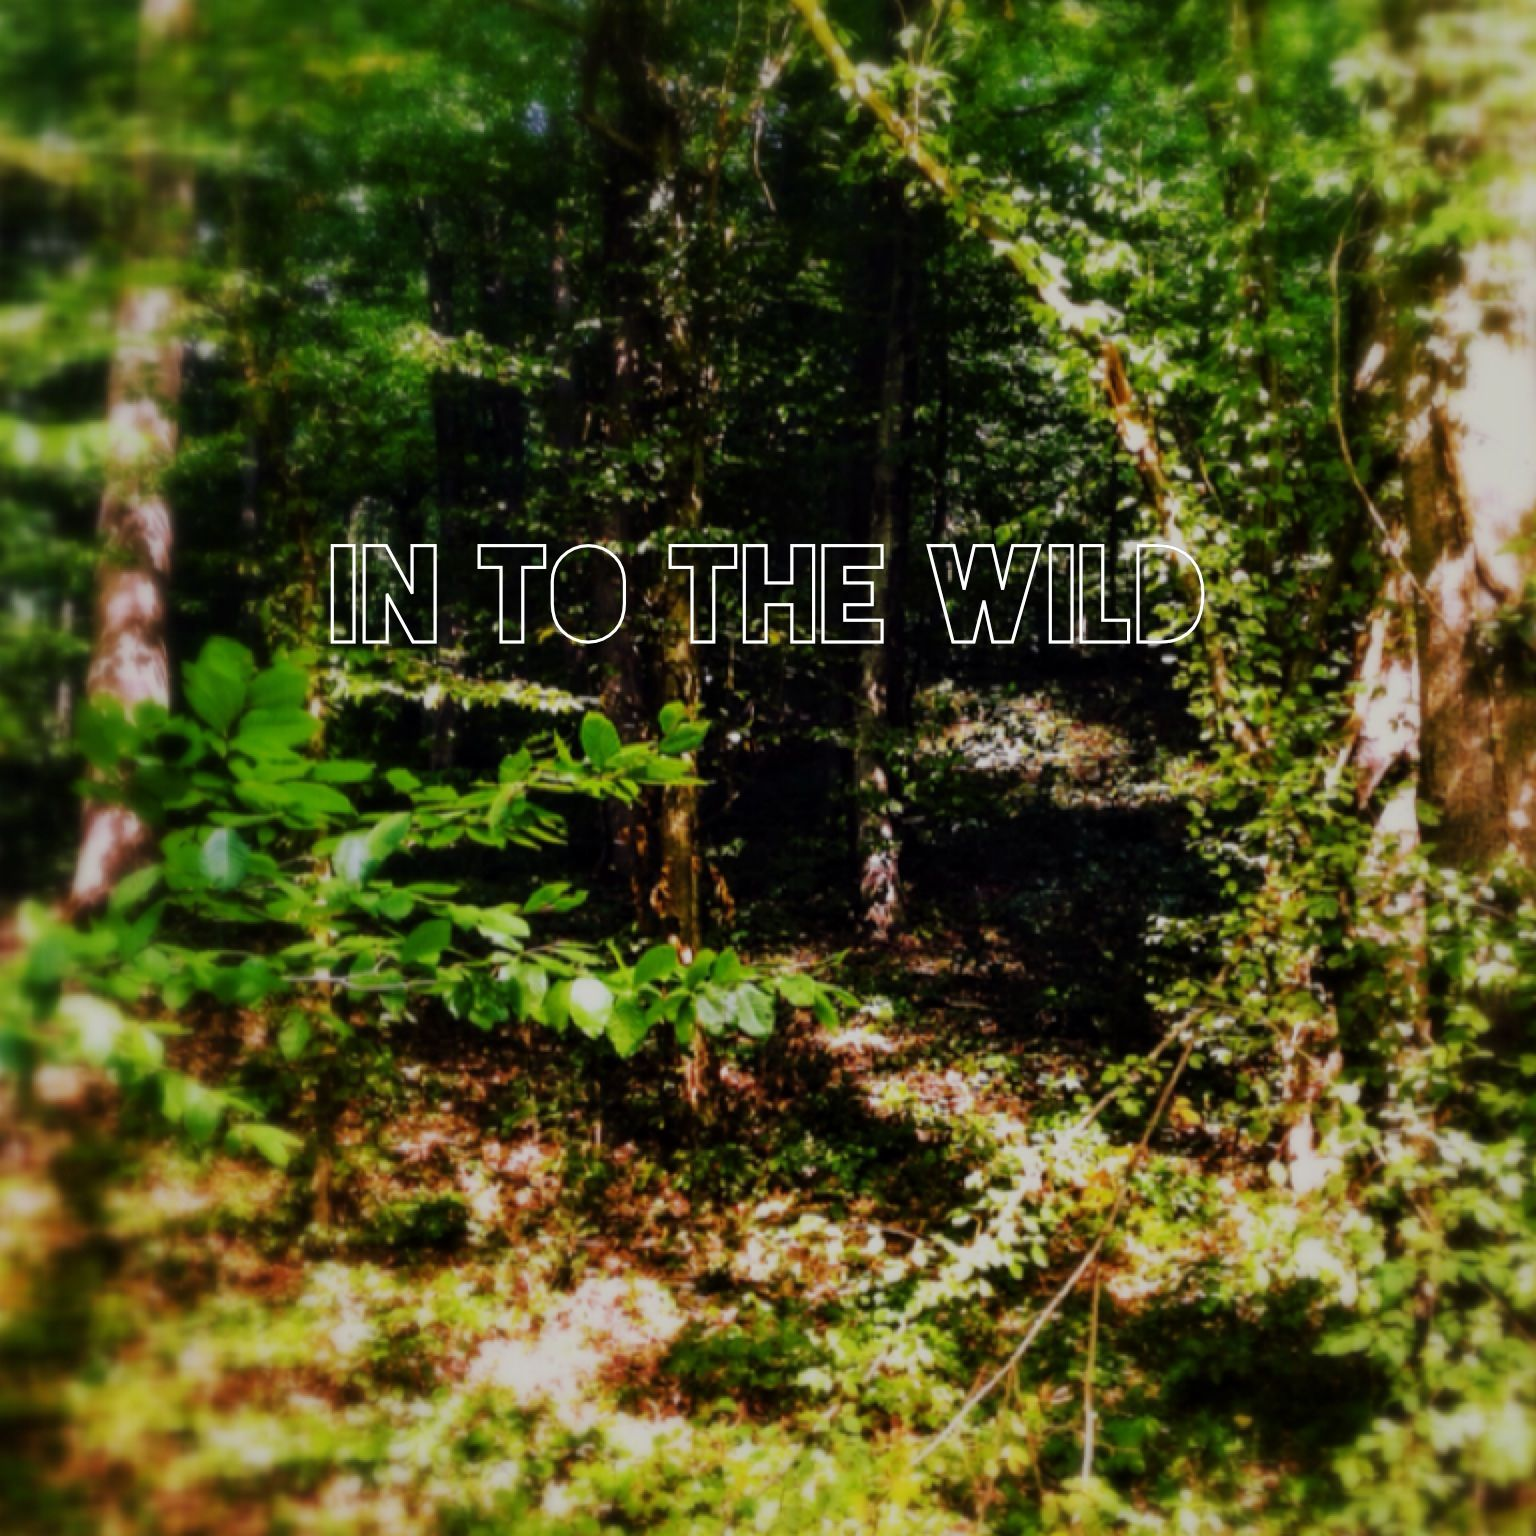 İn to the wild #over